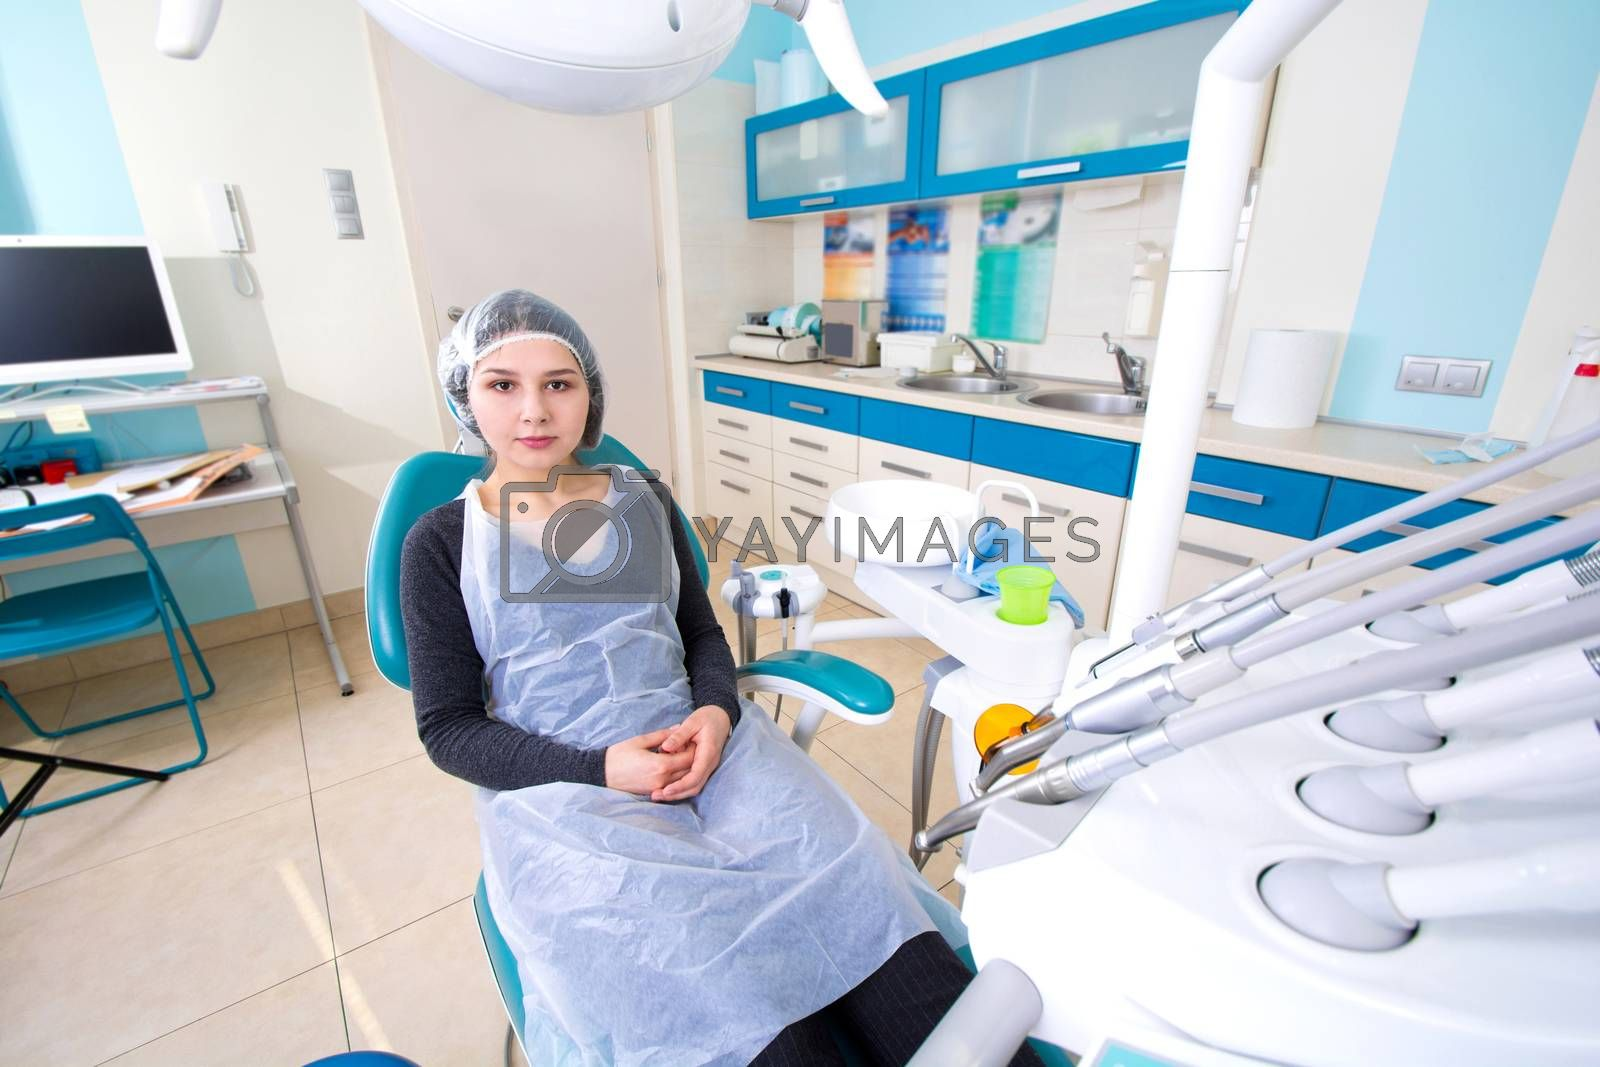 Female patient waiting for dental treatment in a dental chair. Dental Hygiene and Health conceptual image.